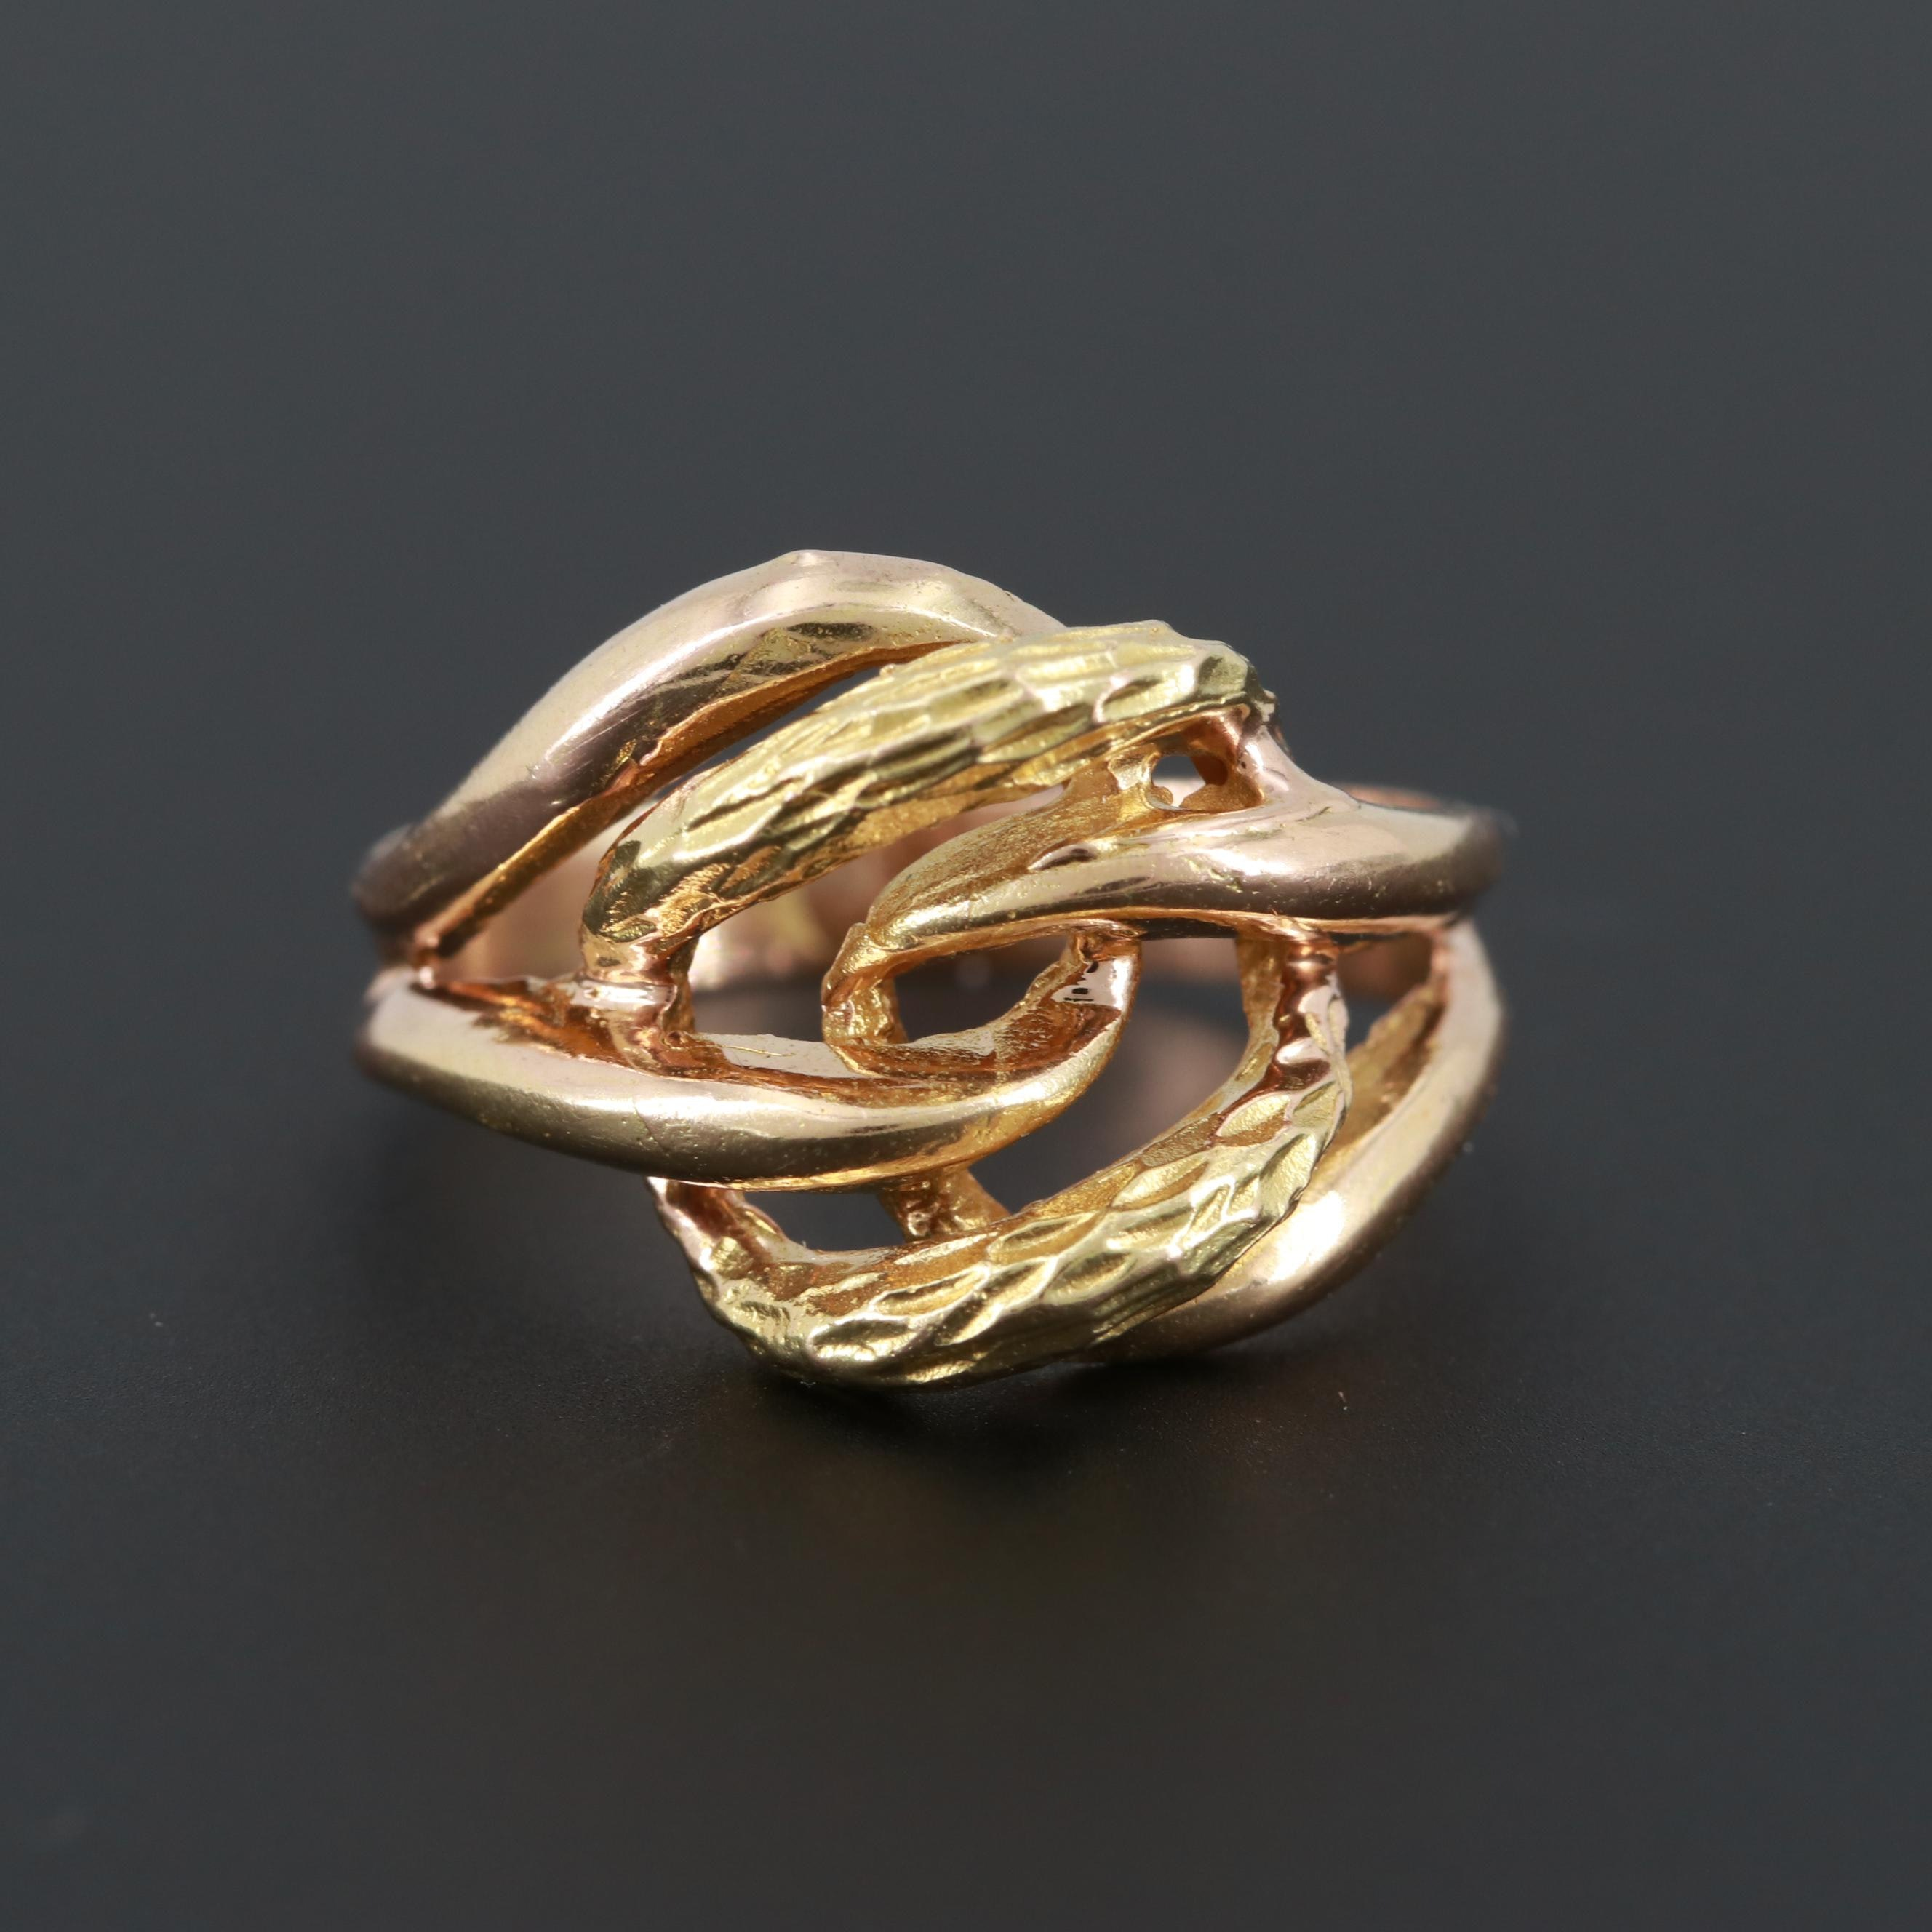 Vintage 14K Rose and Yellow Gold Knot Ring with Branch Motif Accents